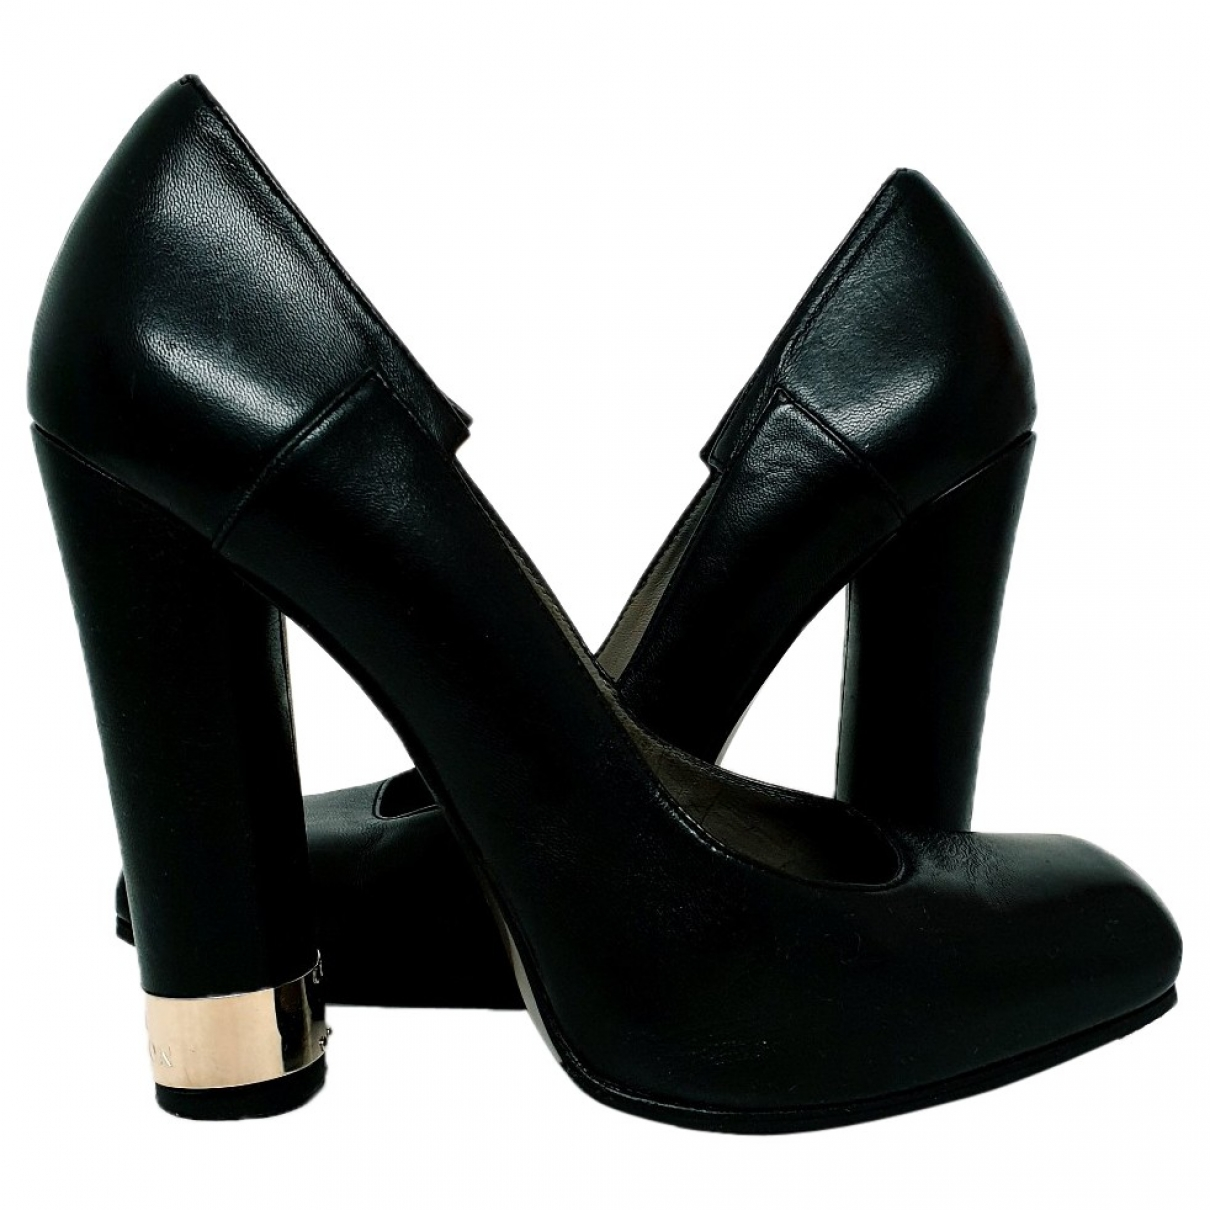 Versace \N Black Leather Heels for Women 38 EU